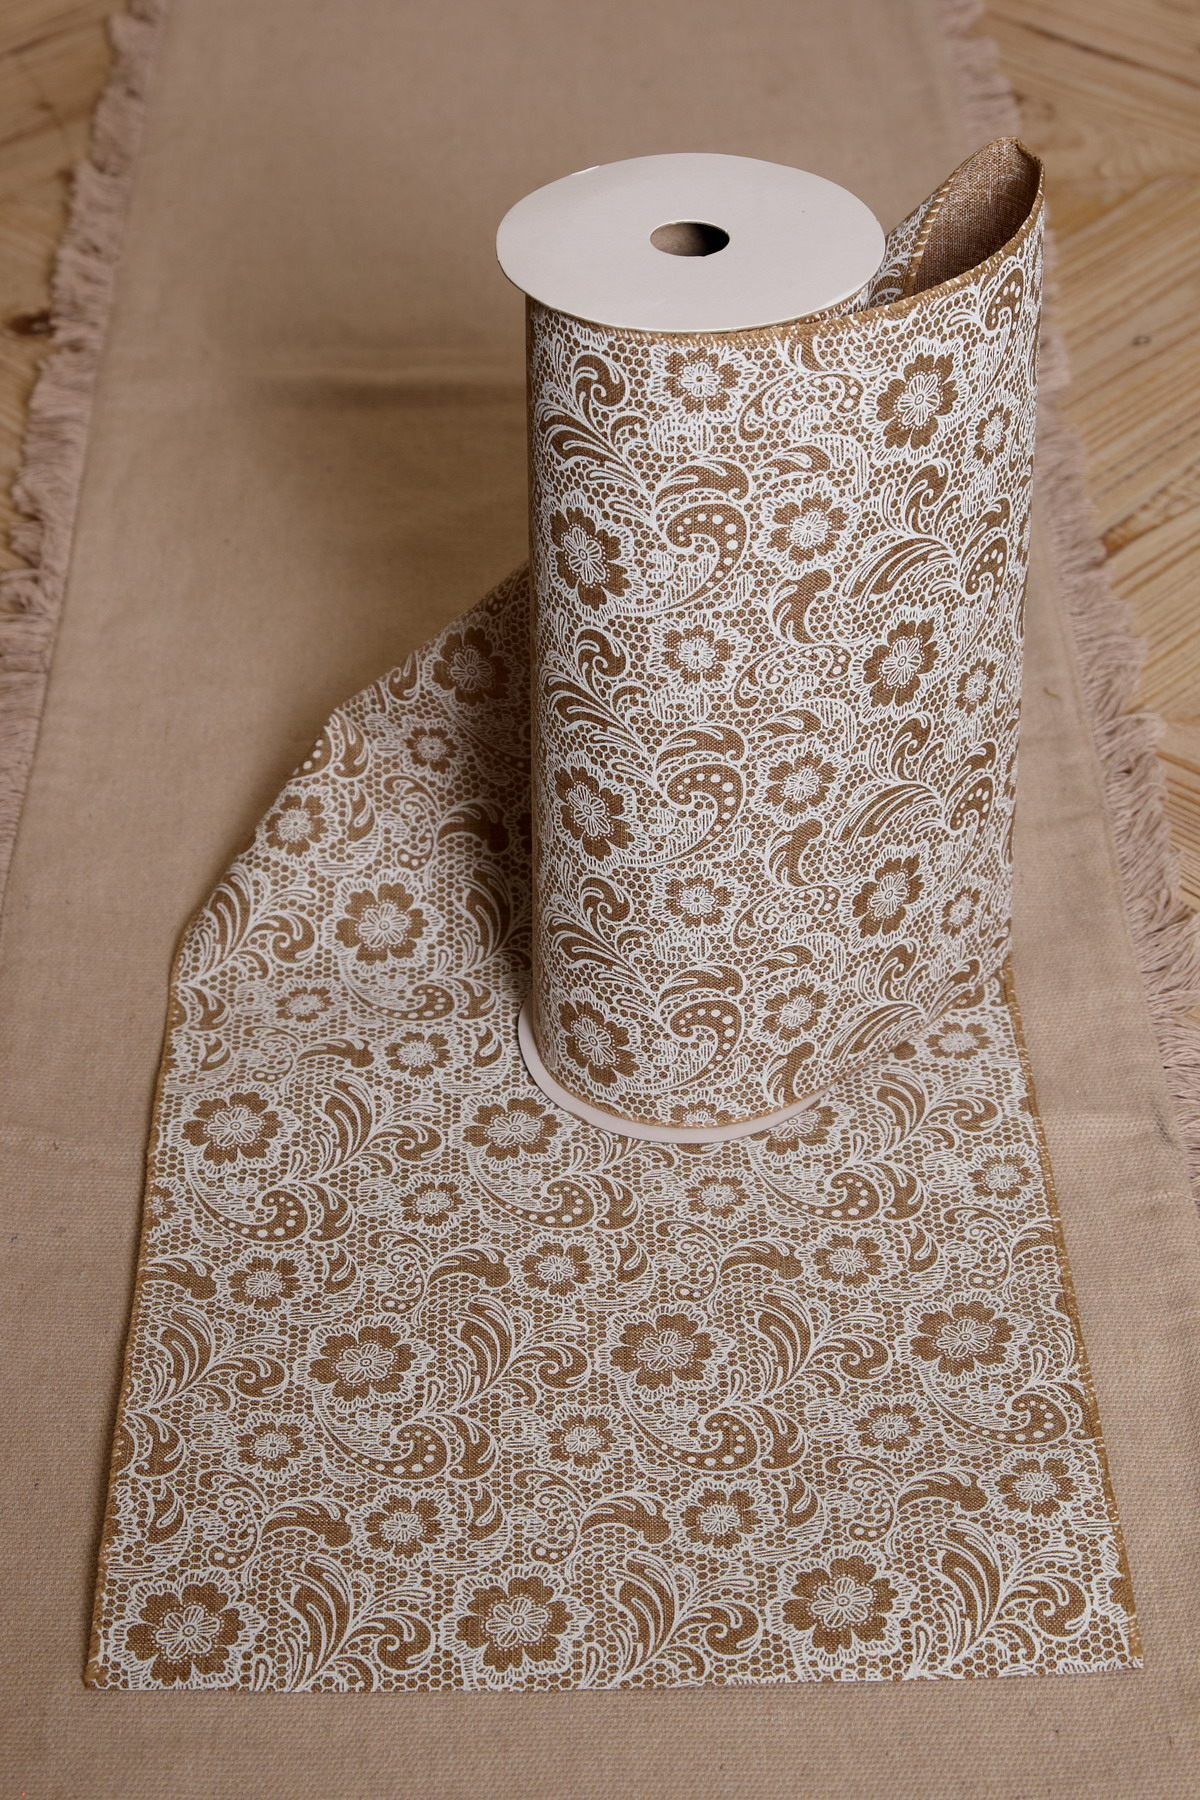 Short Table Runner | Lace Table Runners | Cheap Lace Table Runners